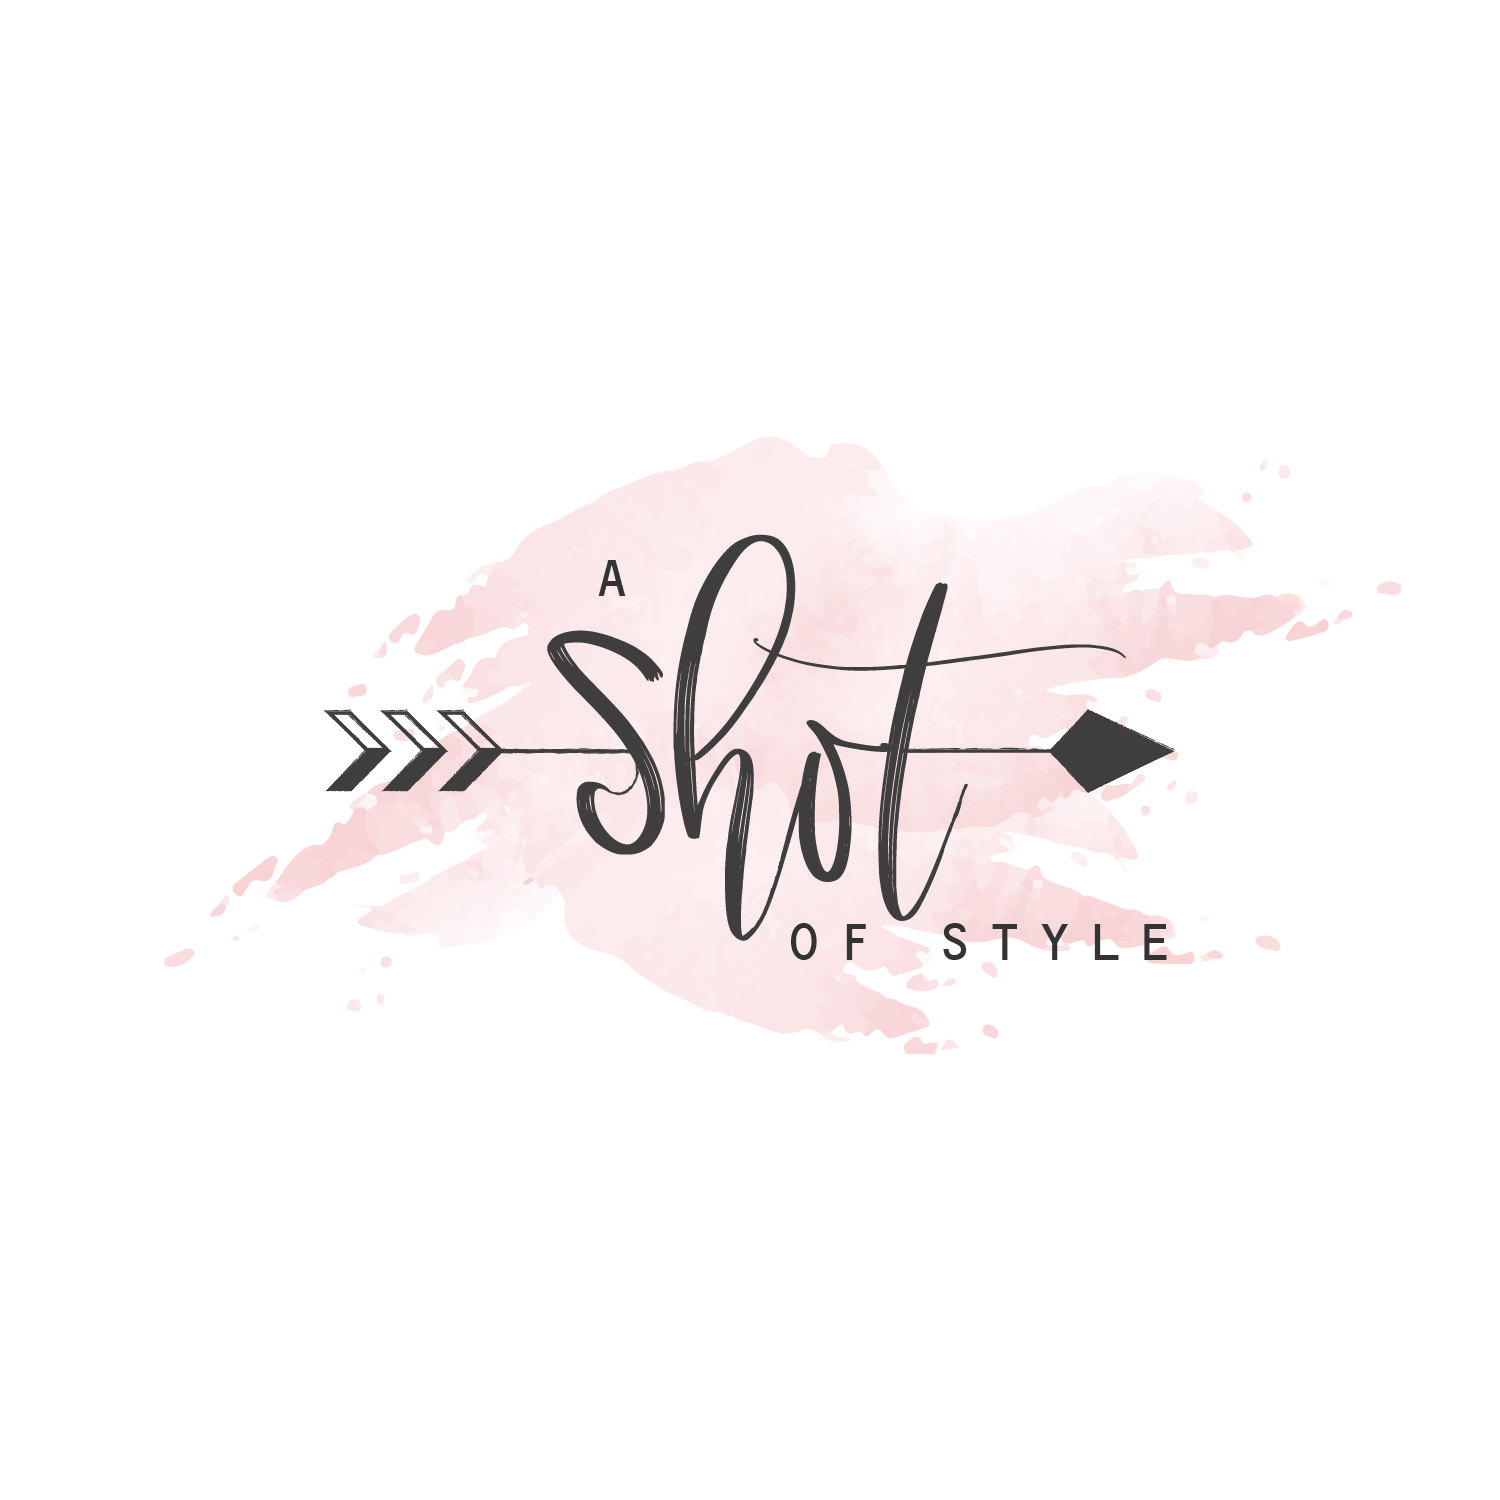 A Shot of Style